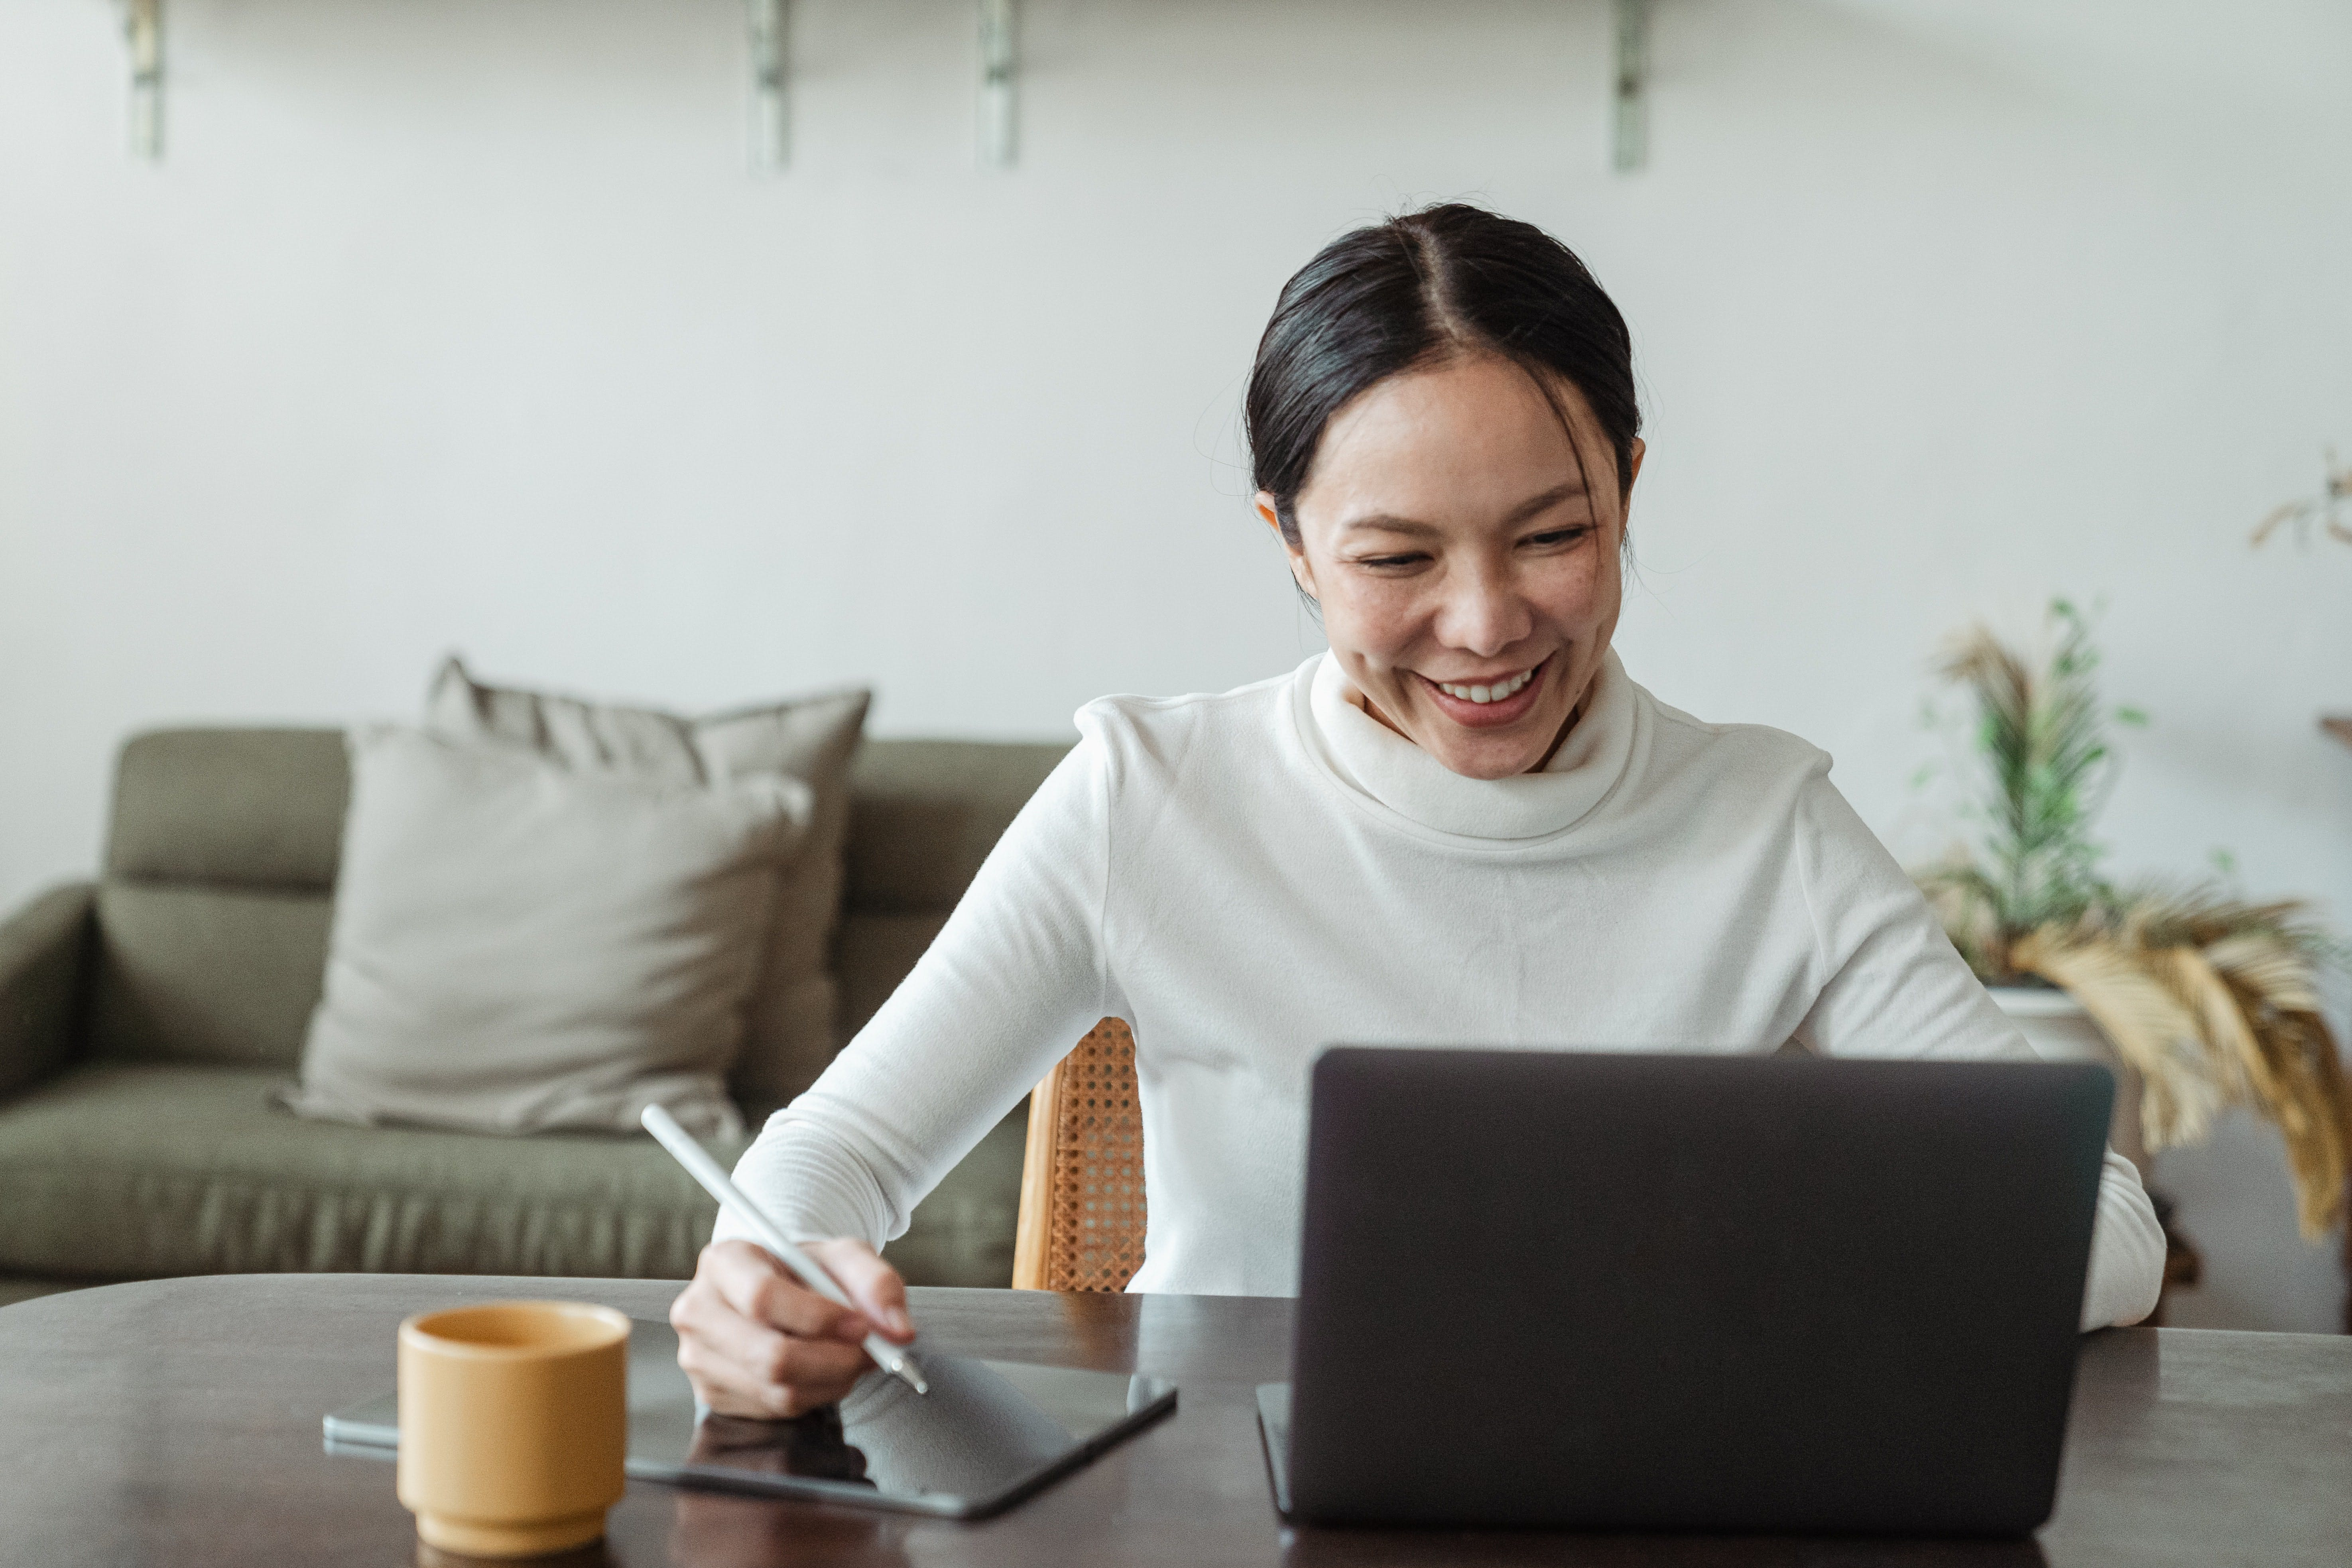 Woman working from home and laughing